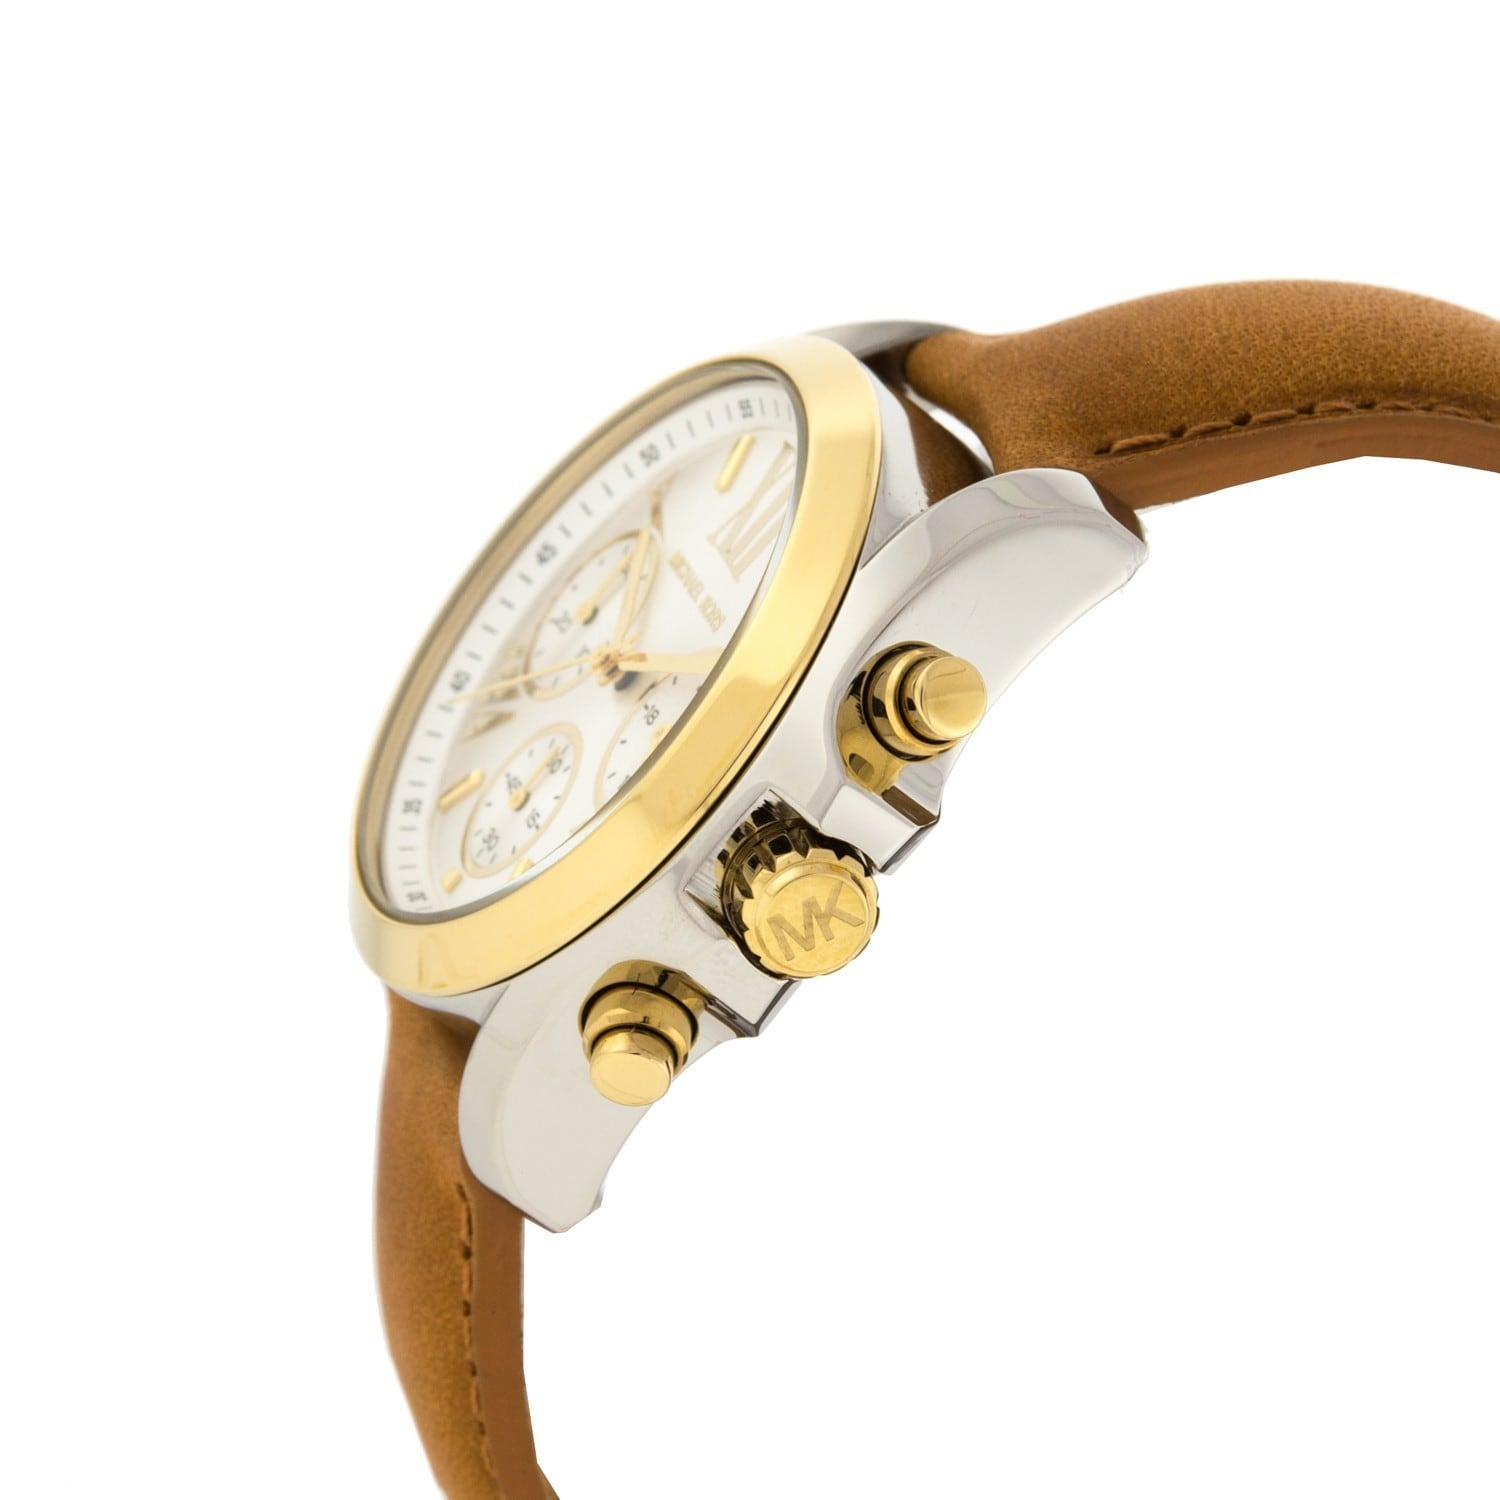 5c8275ef41a5 Shop Michael Kors Women s MK2301  Bradshaw  Brown Leather Watch - Free  Shipping Today - Overstock - 9188901